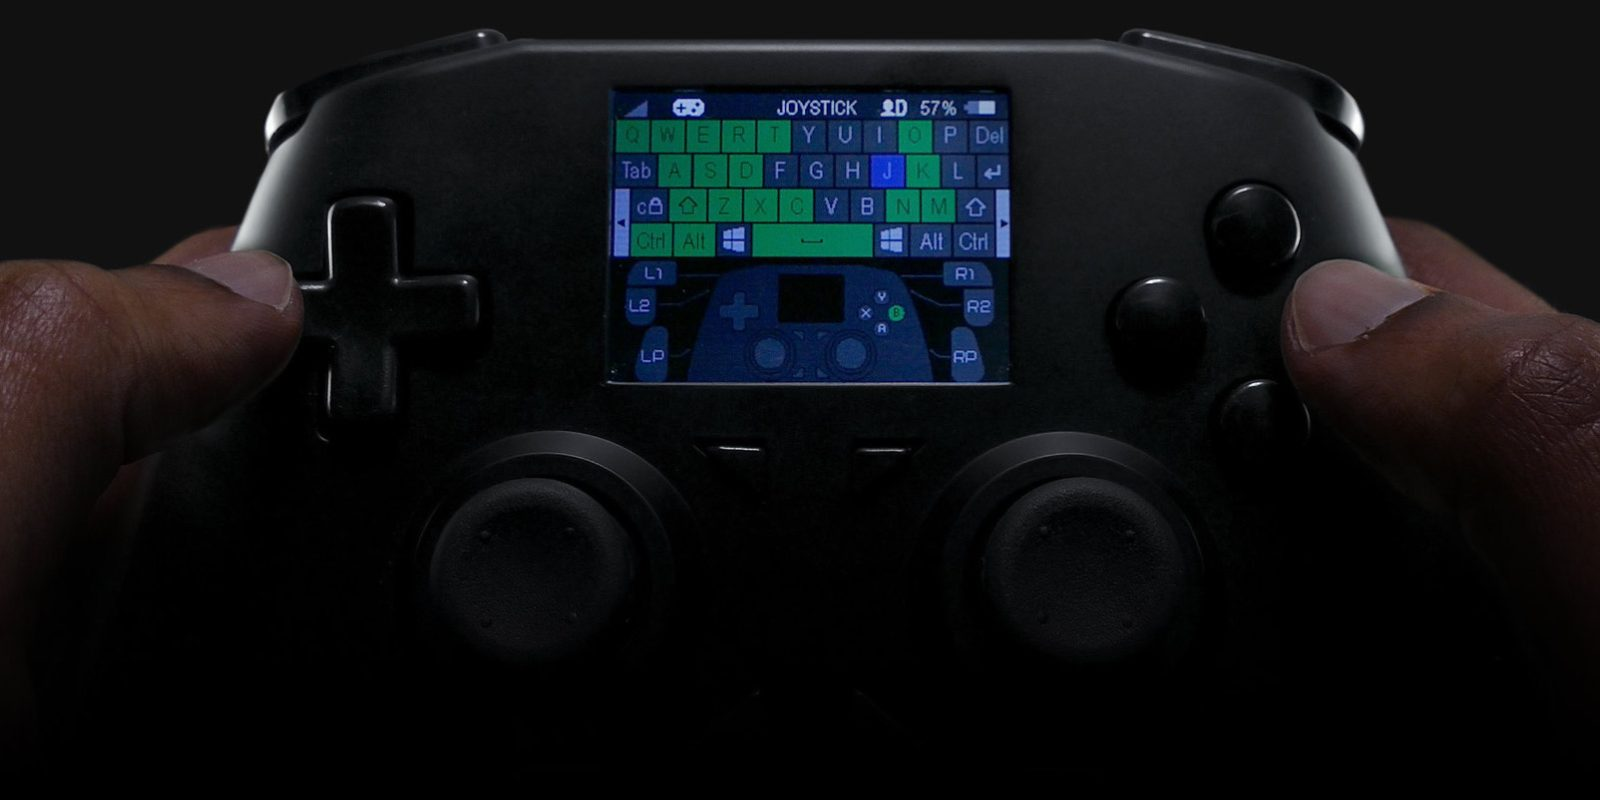 ALL-Controller supports your Xbox One, PS4 and iOS/Android